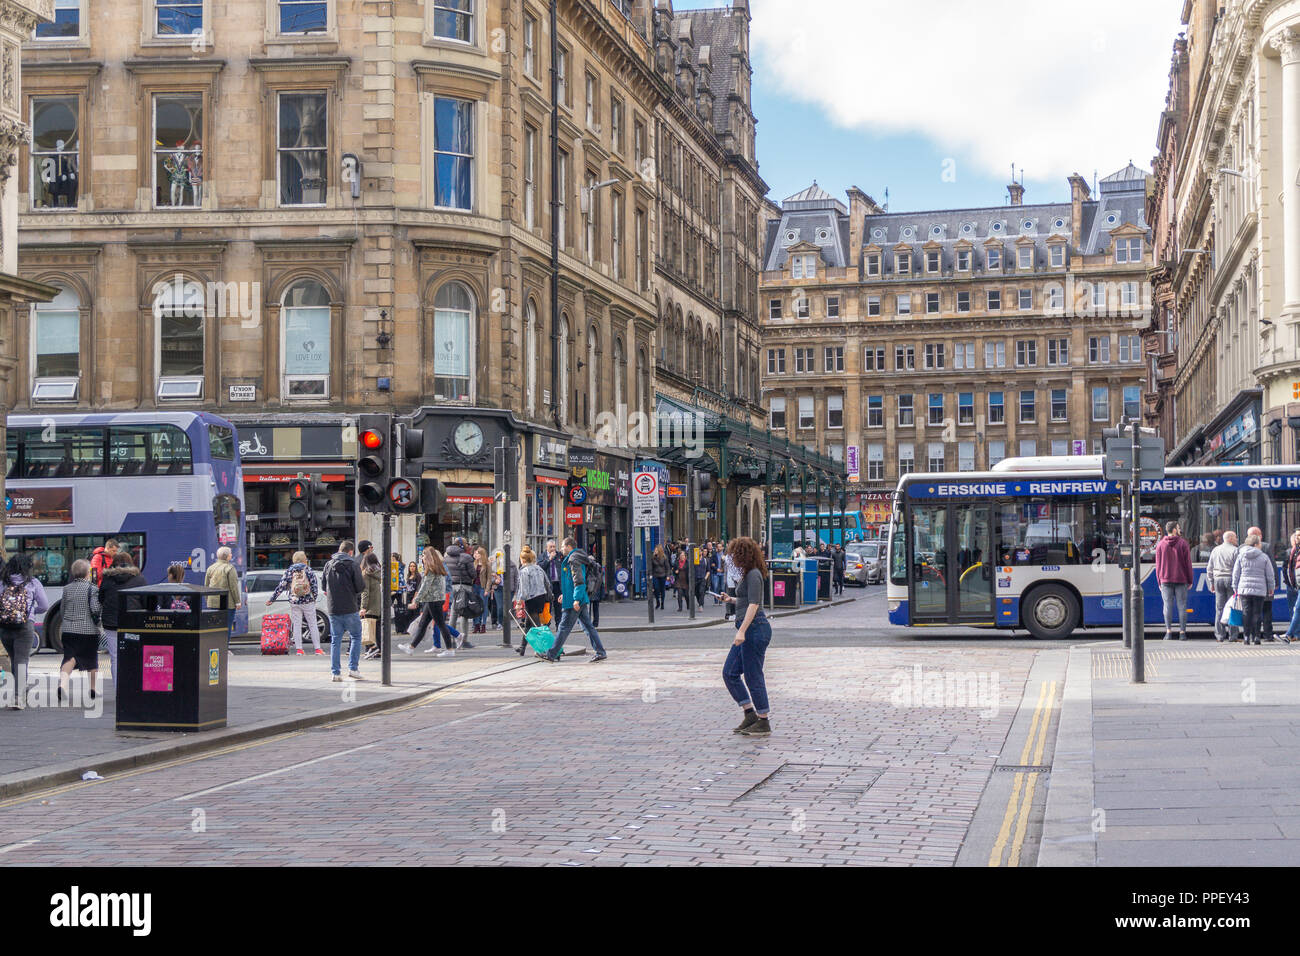 Glasgow City, Scotland, UK - September 22, 2018: Gordon St looking along to Glasgow central Station very busy with traffic and pedestrians. - Stock Image